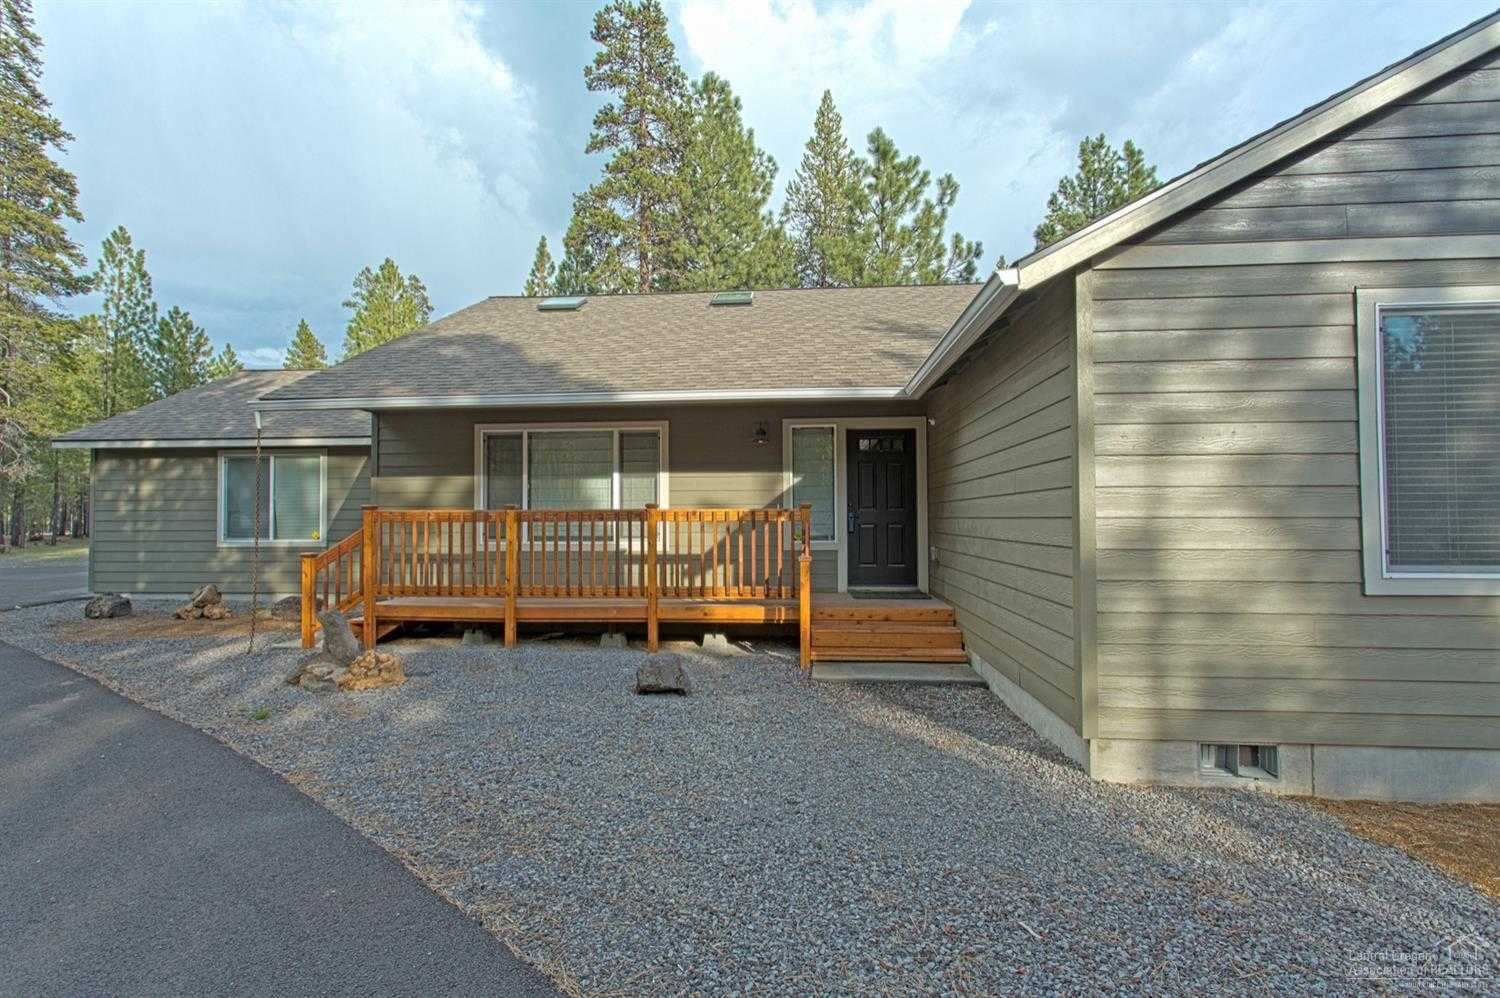 $515,000 - 4Br/2Ba -  for Sale in La Pine